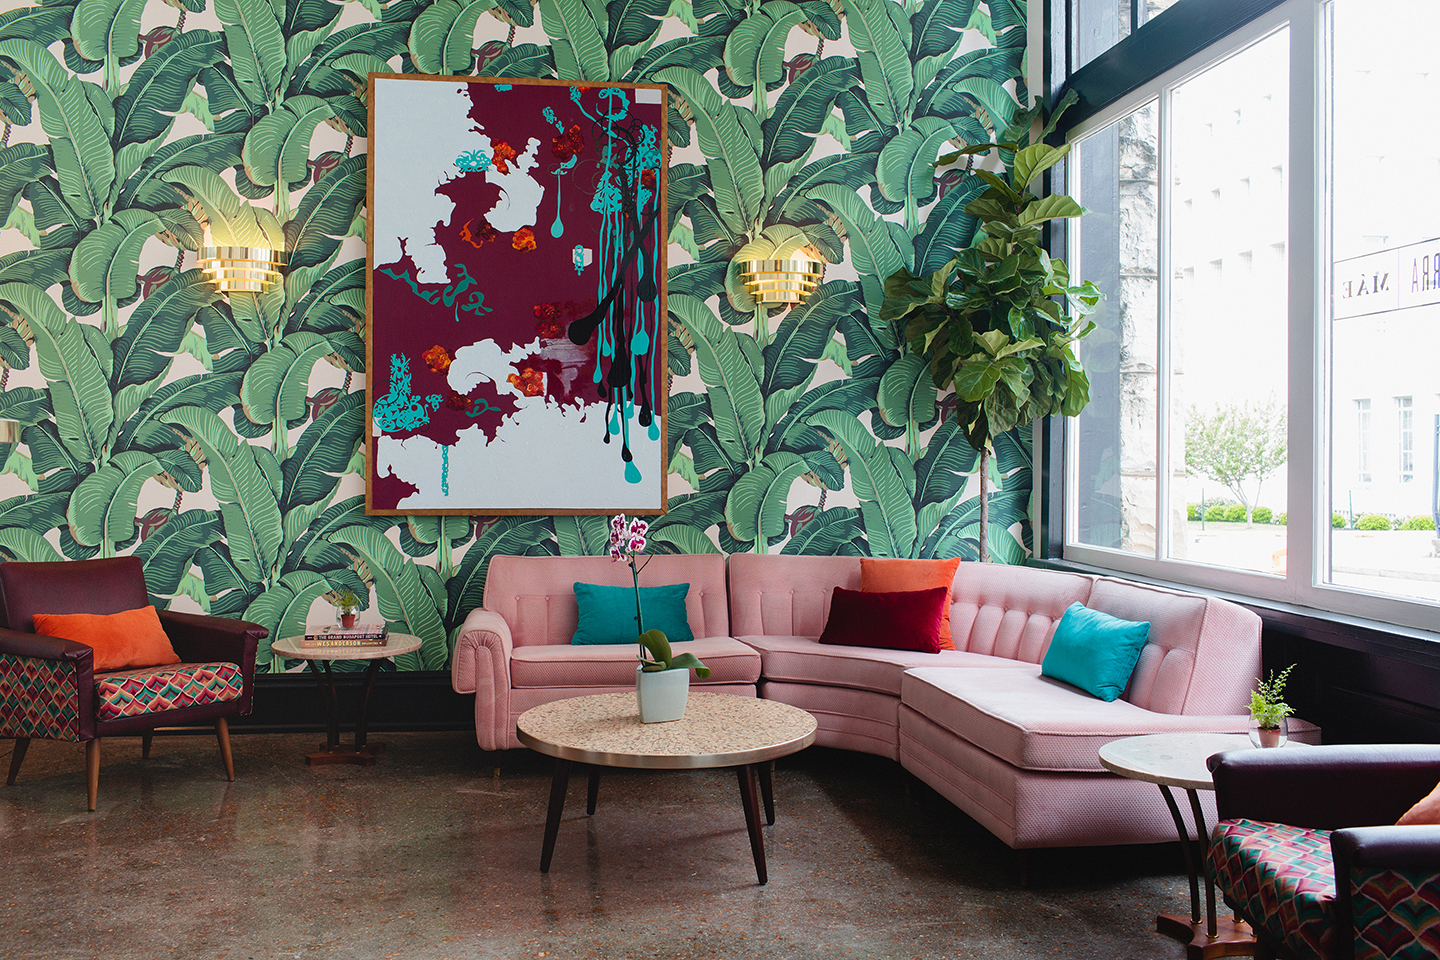 Dwell Hotel, The Parlor, Photographed by: Graham Yelton - Life-Styled.net